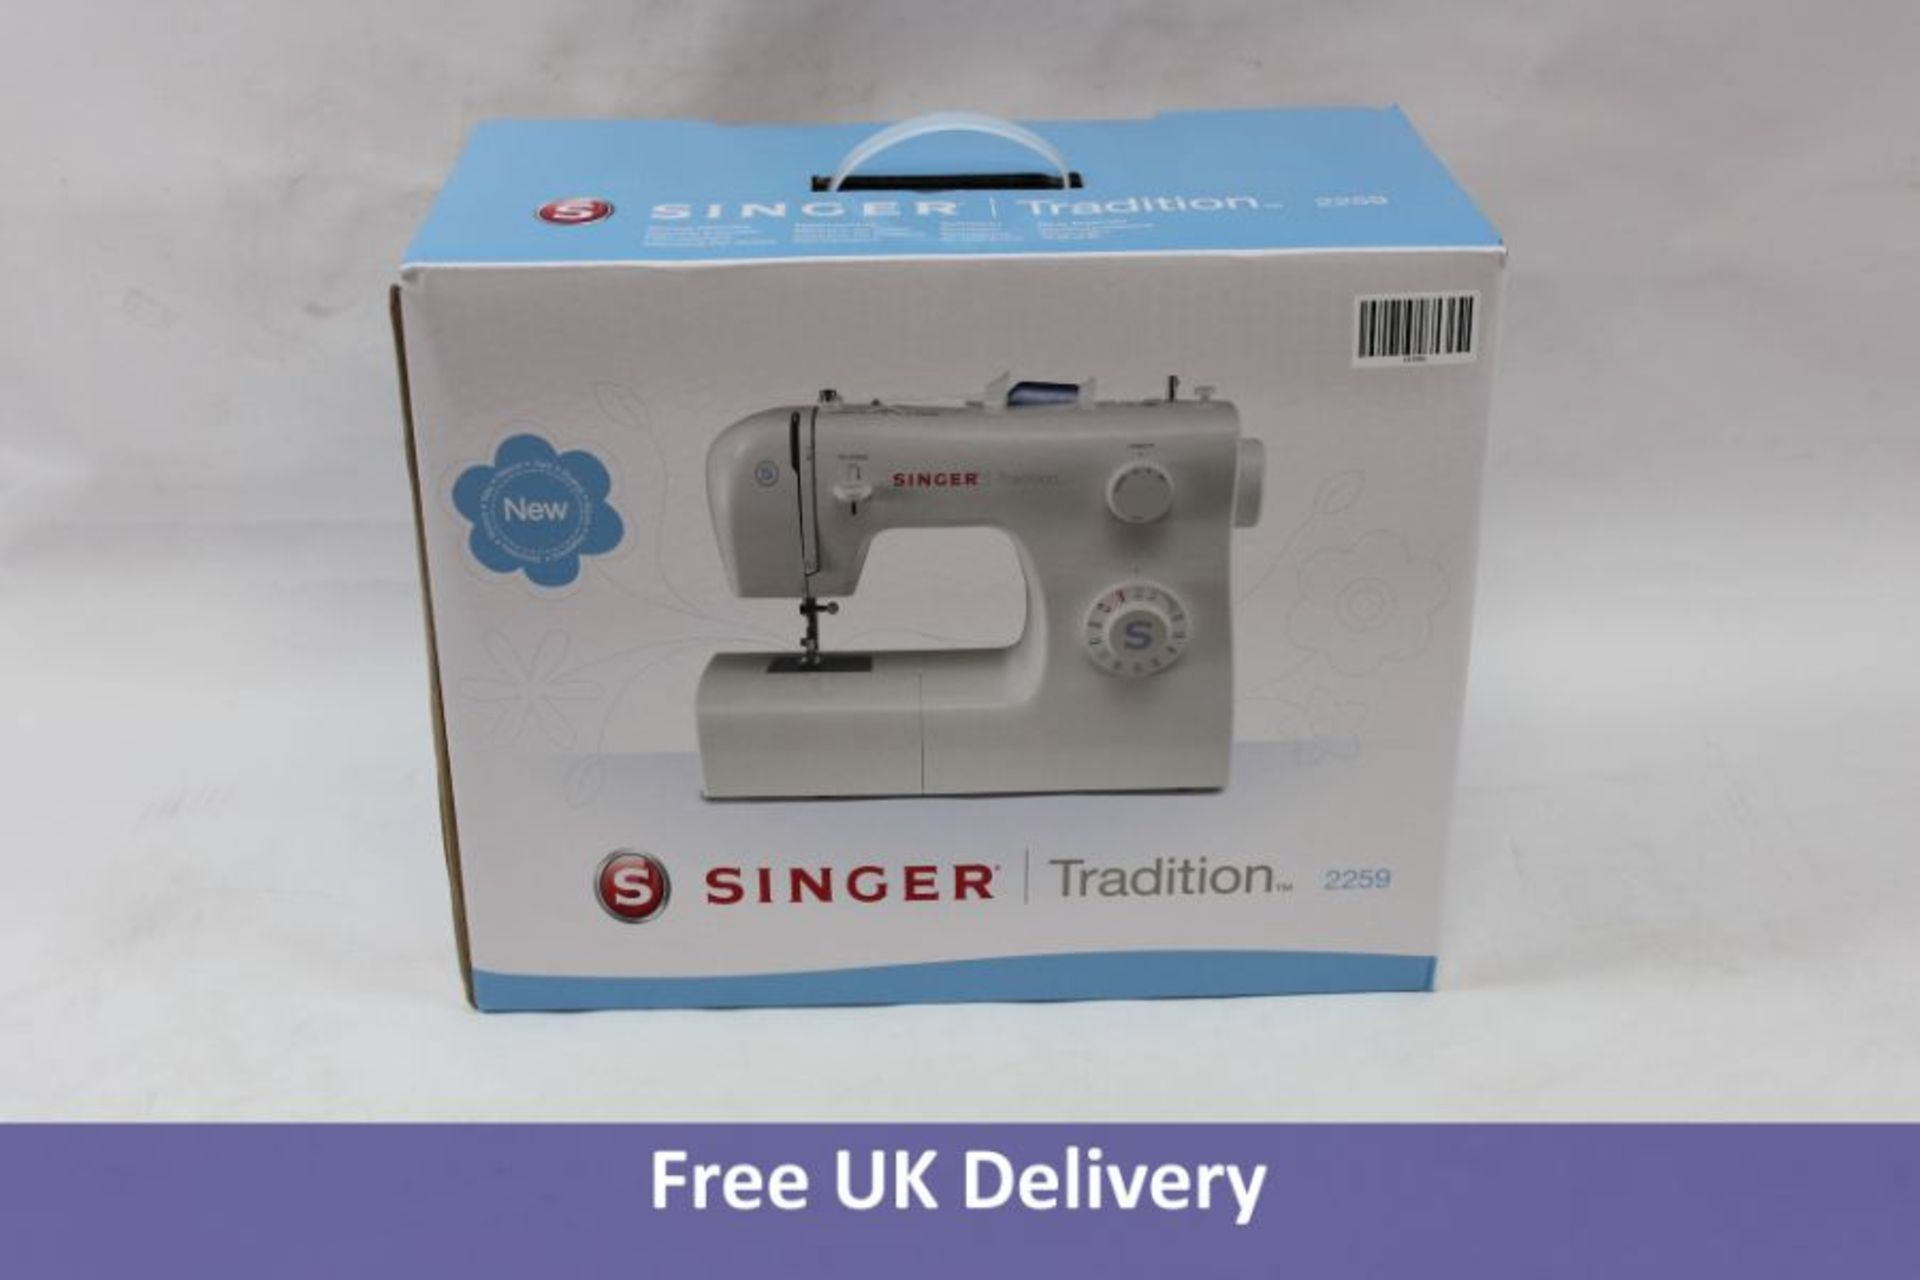 Singer Tradition Sewing Machine, Model 2259